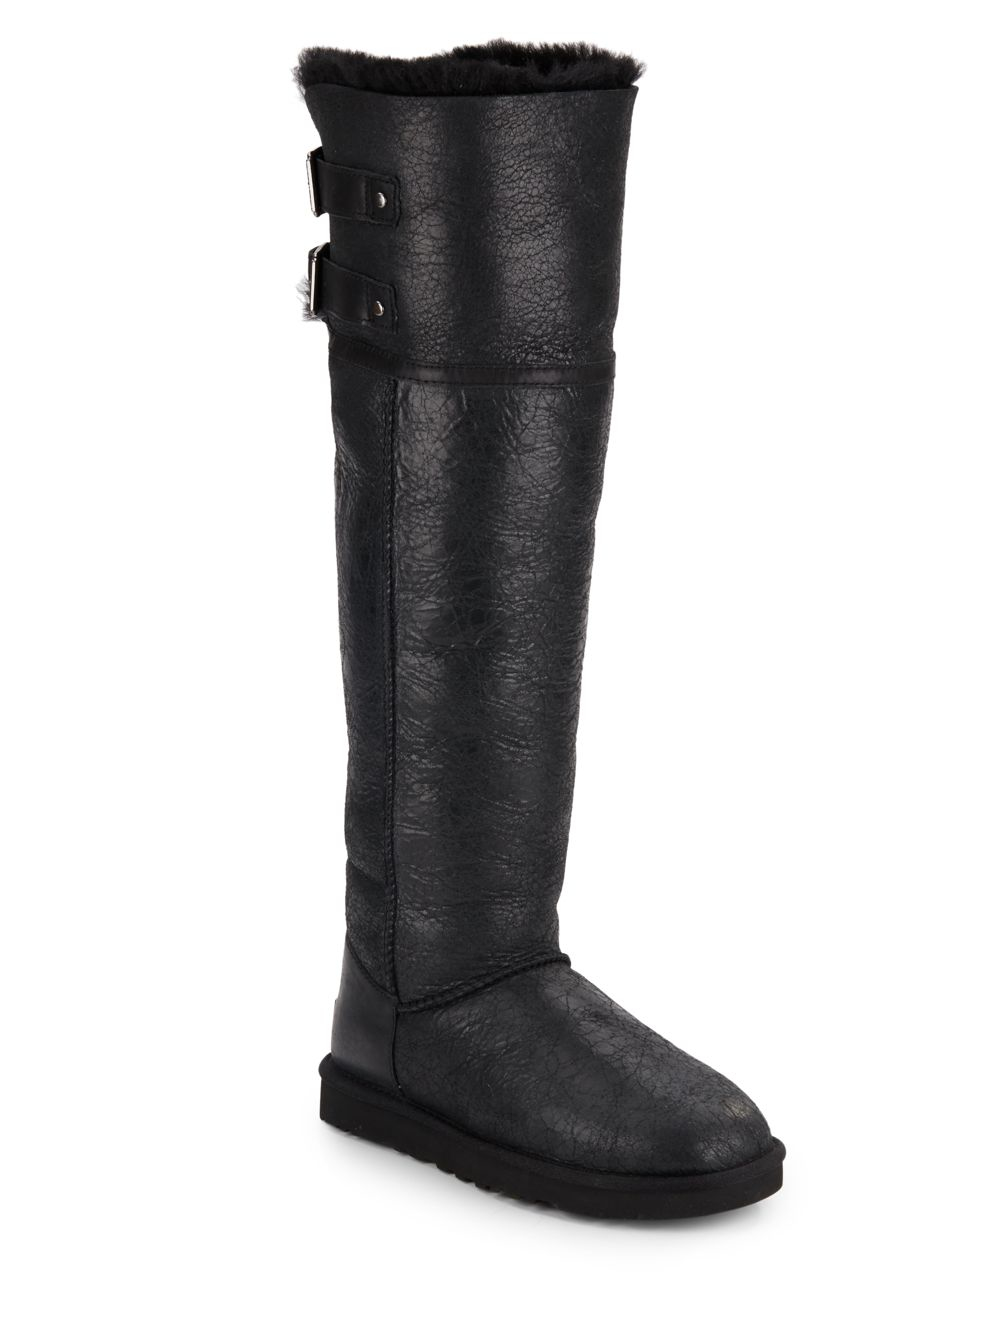 Ugg Devandra Convertible Shearling-lined Leather Over-the-knee